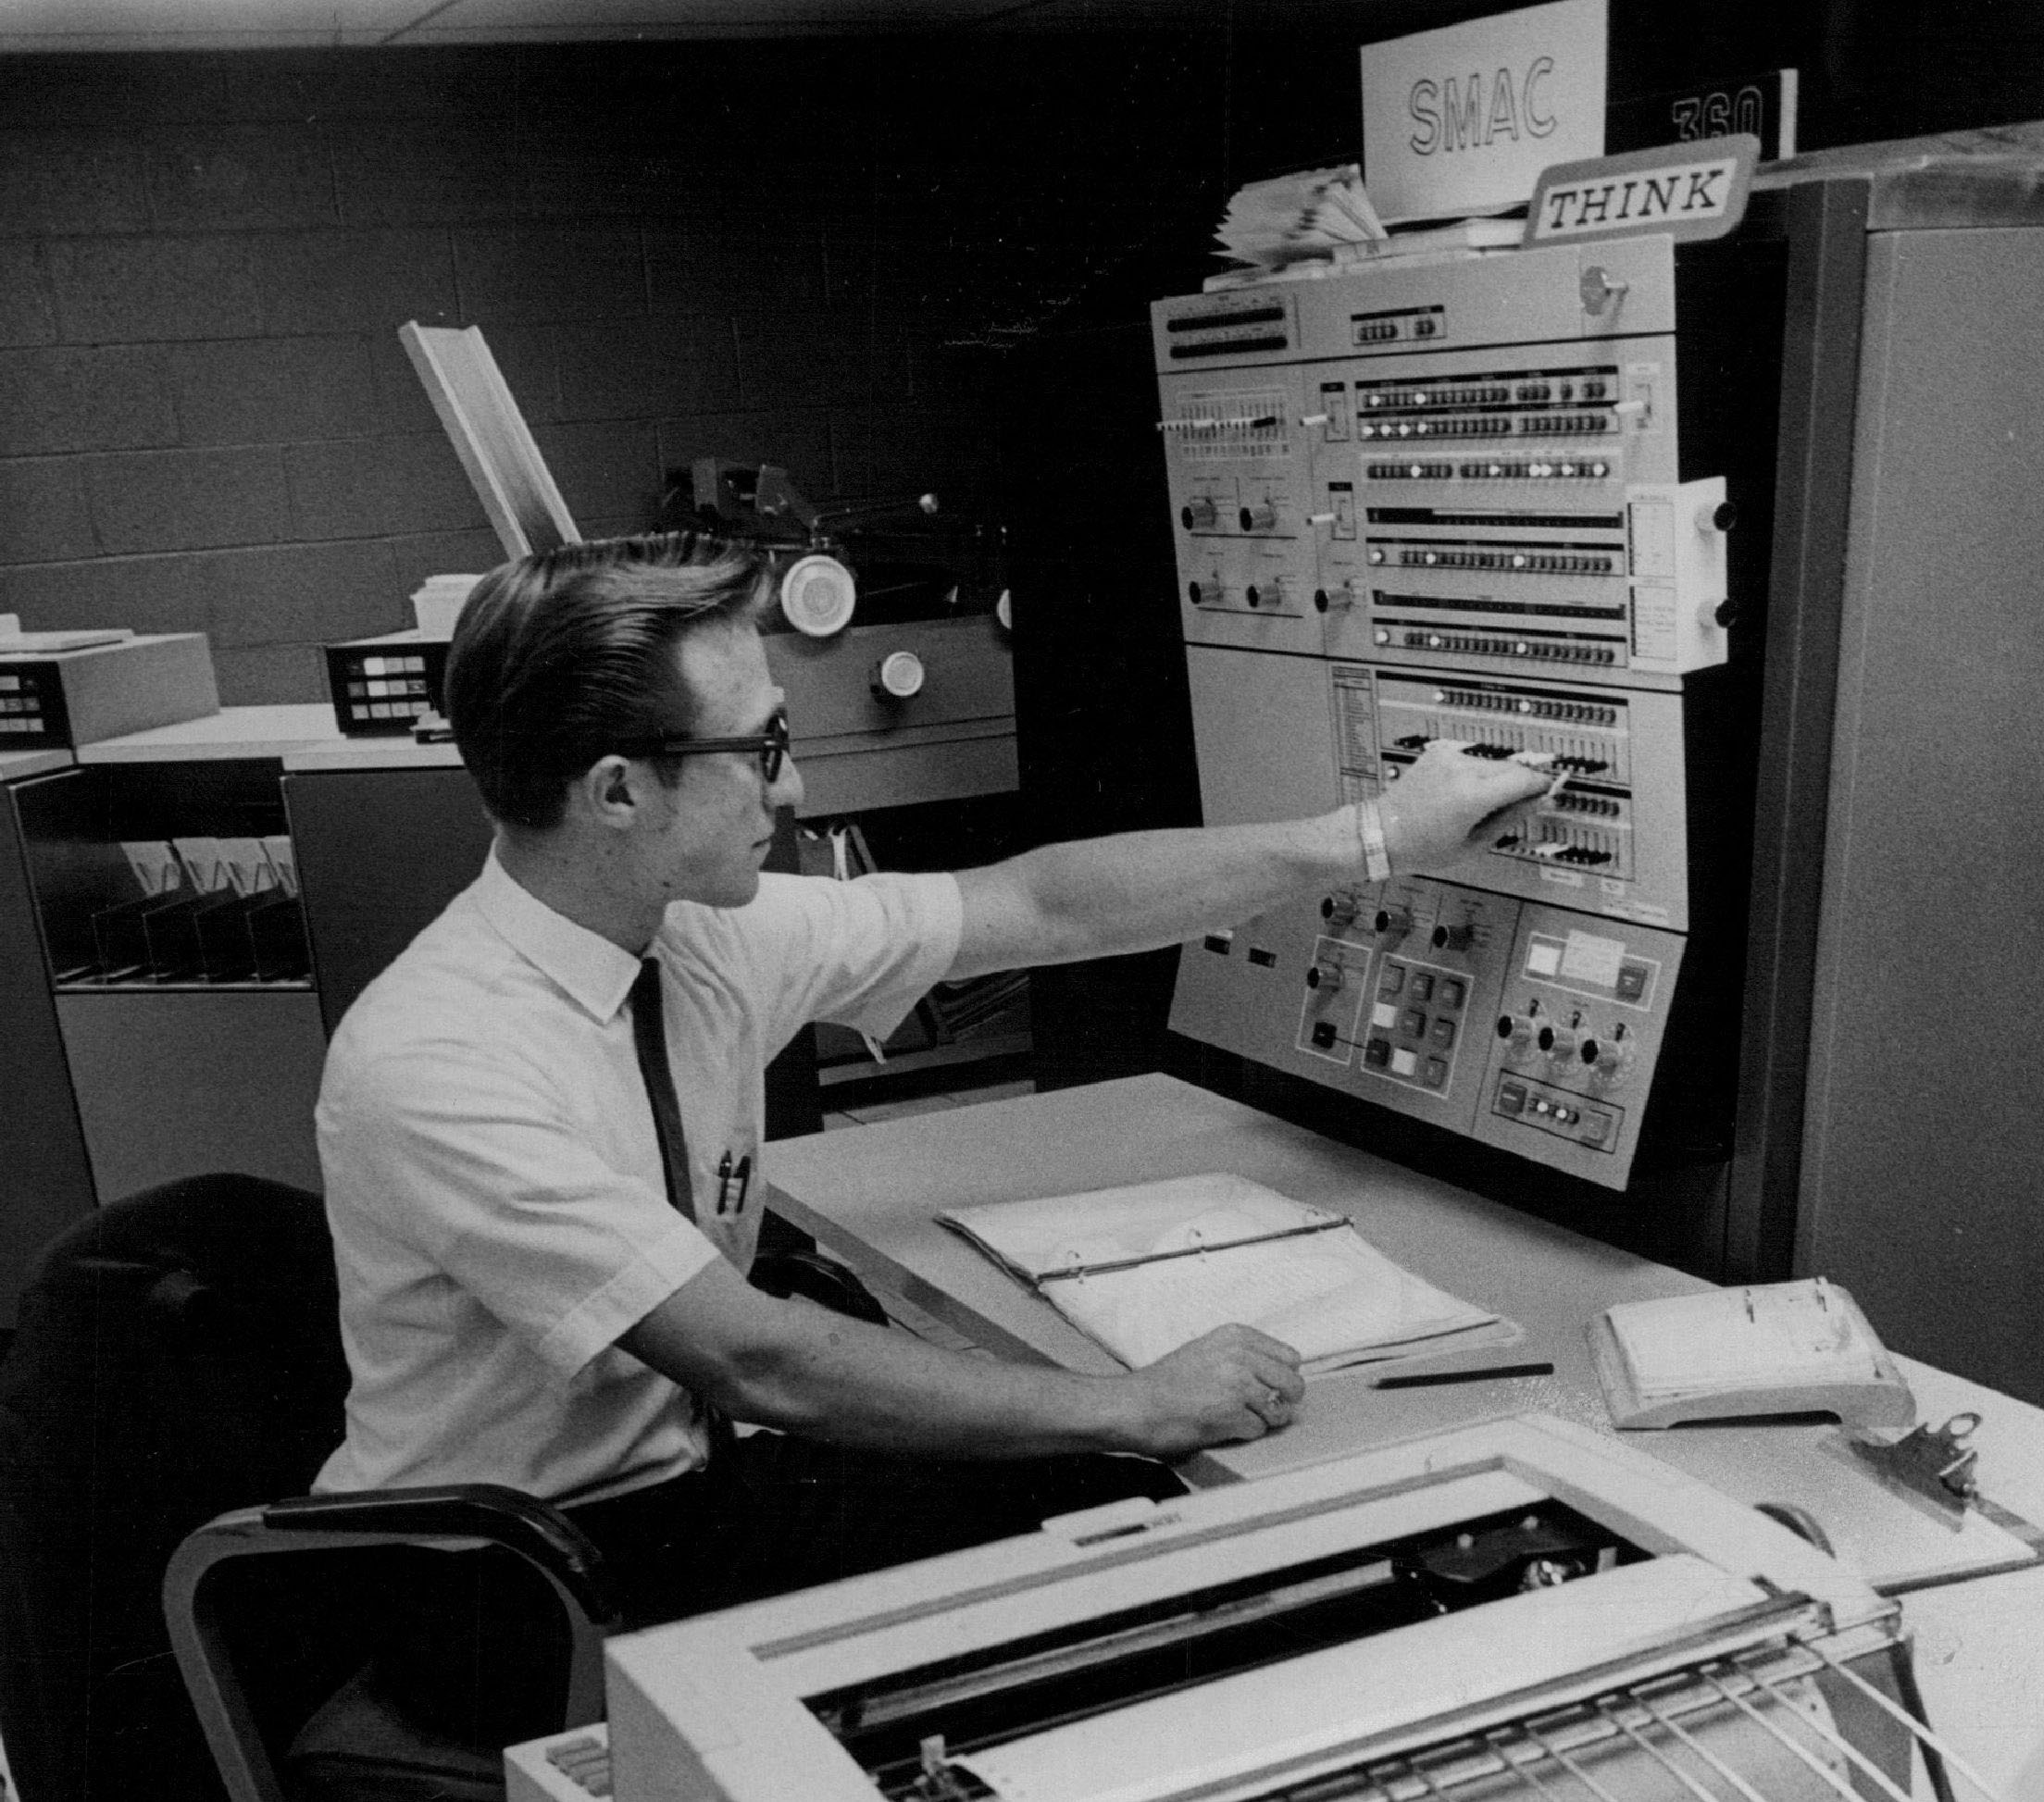 1970: St. Joseph Hospital; The computer has been put to work in the hospital. Man operates a large early computer console.